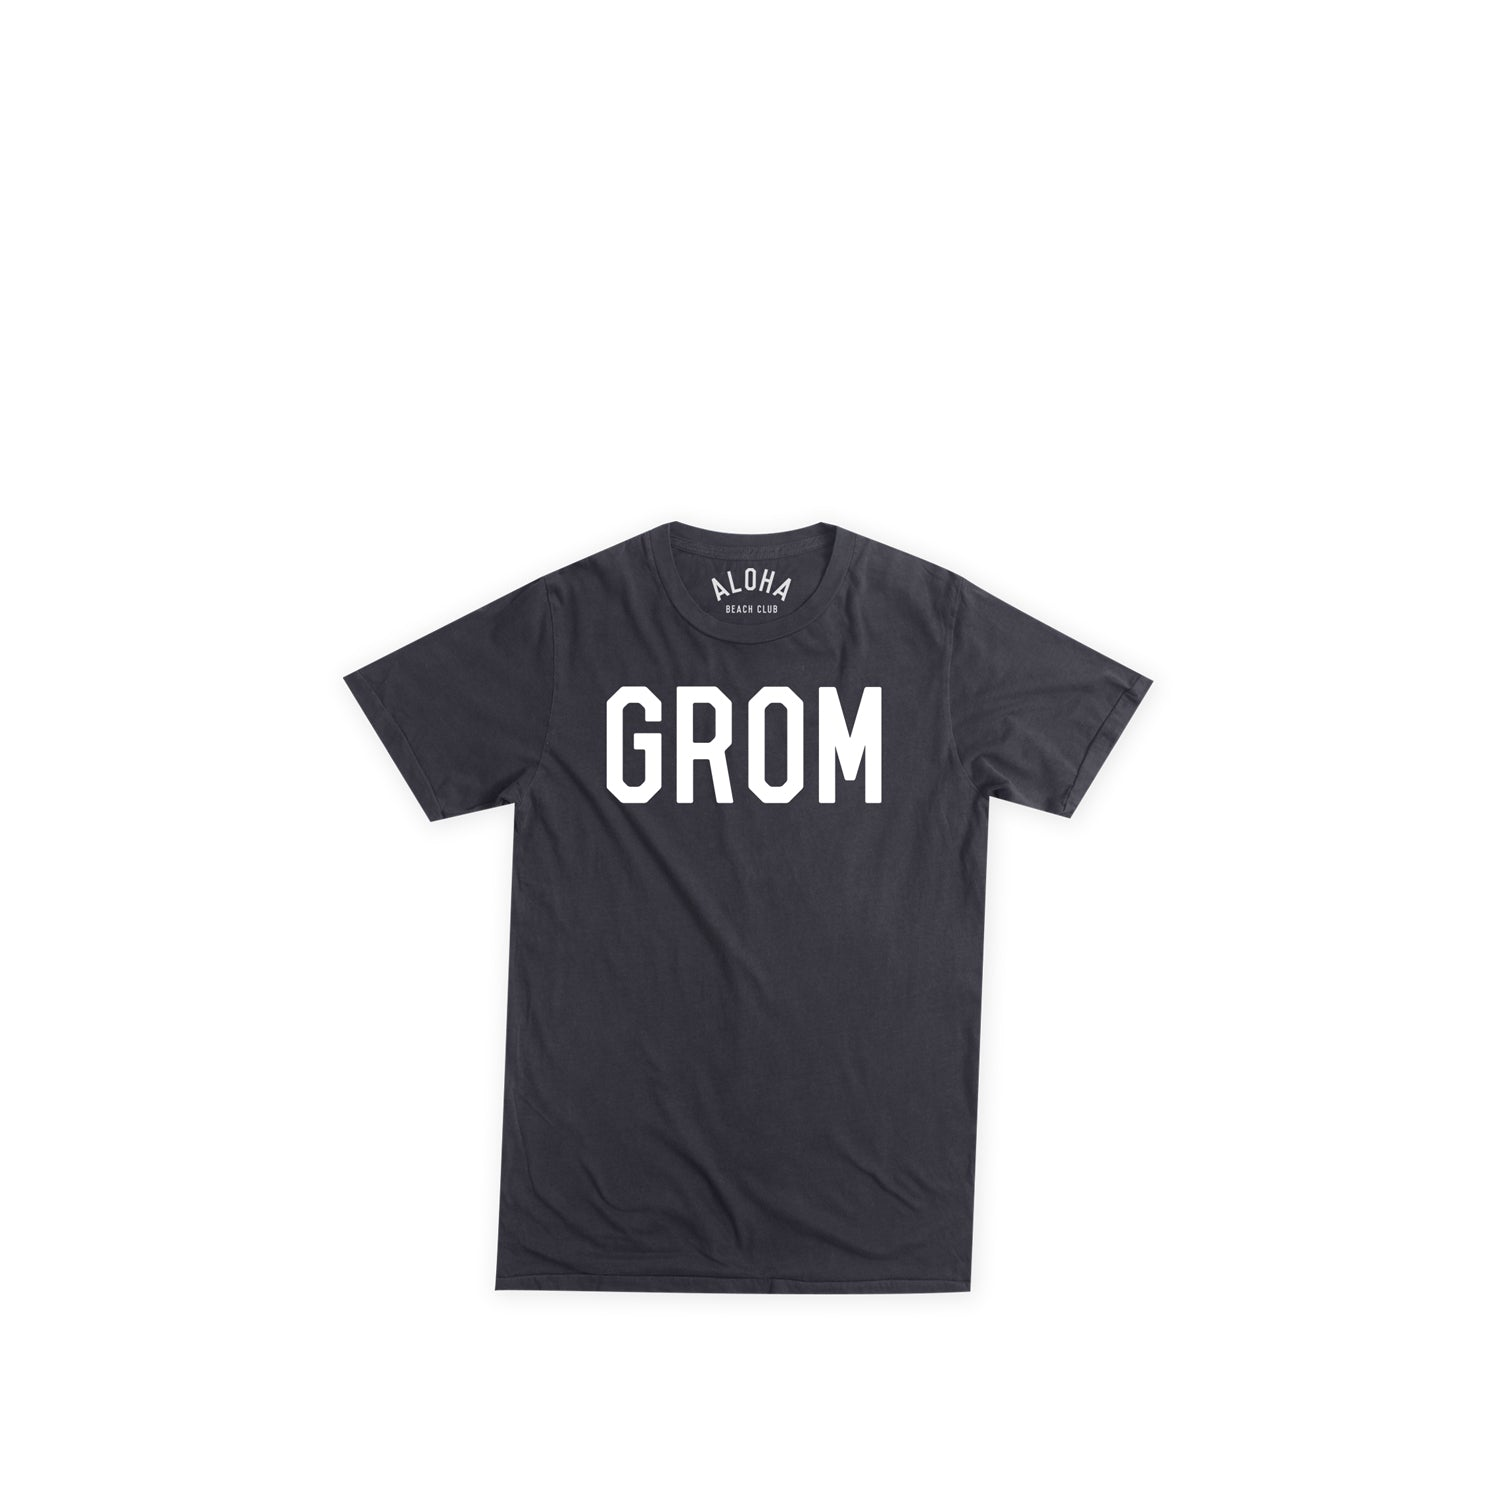 Grom Toddler Aloha Beach Club Tee